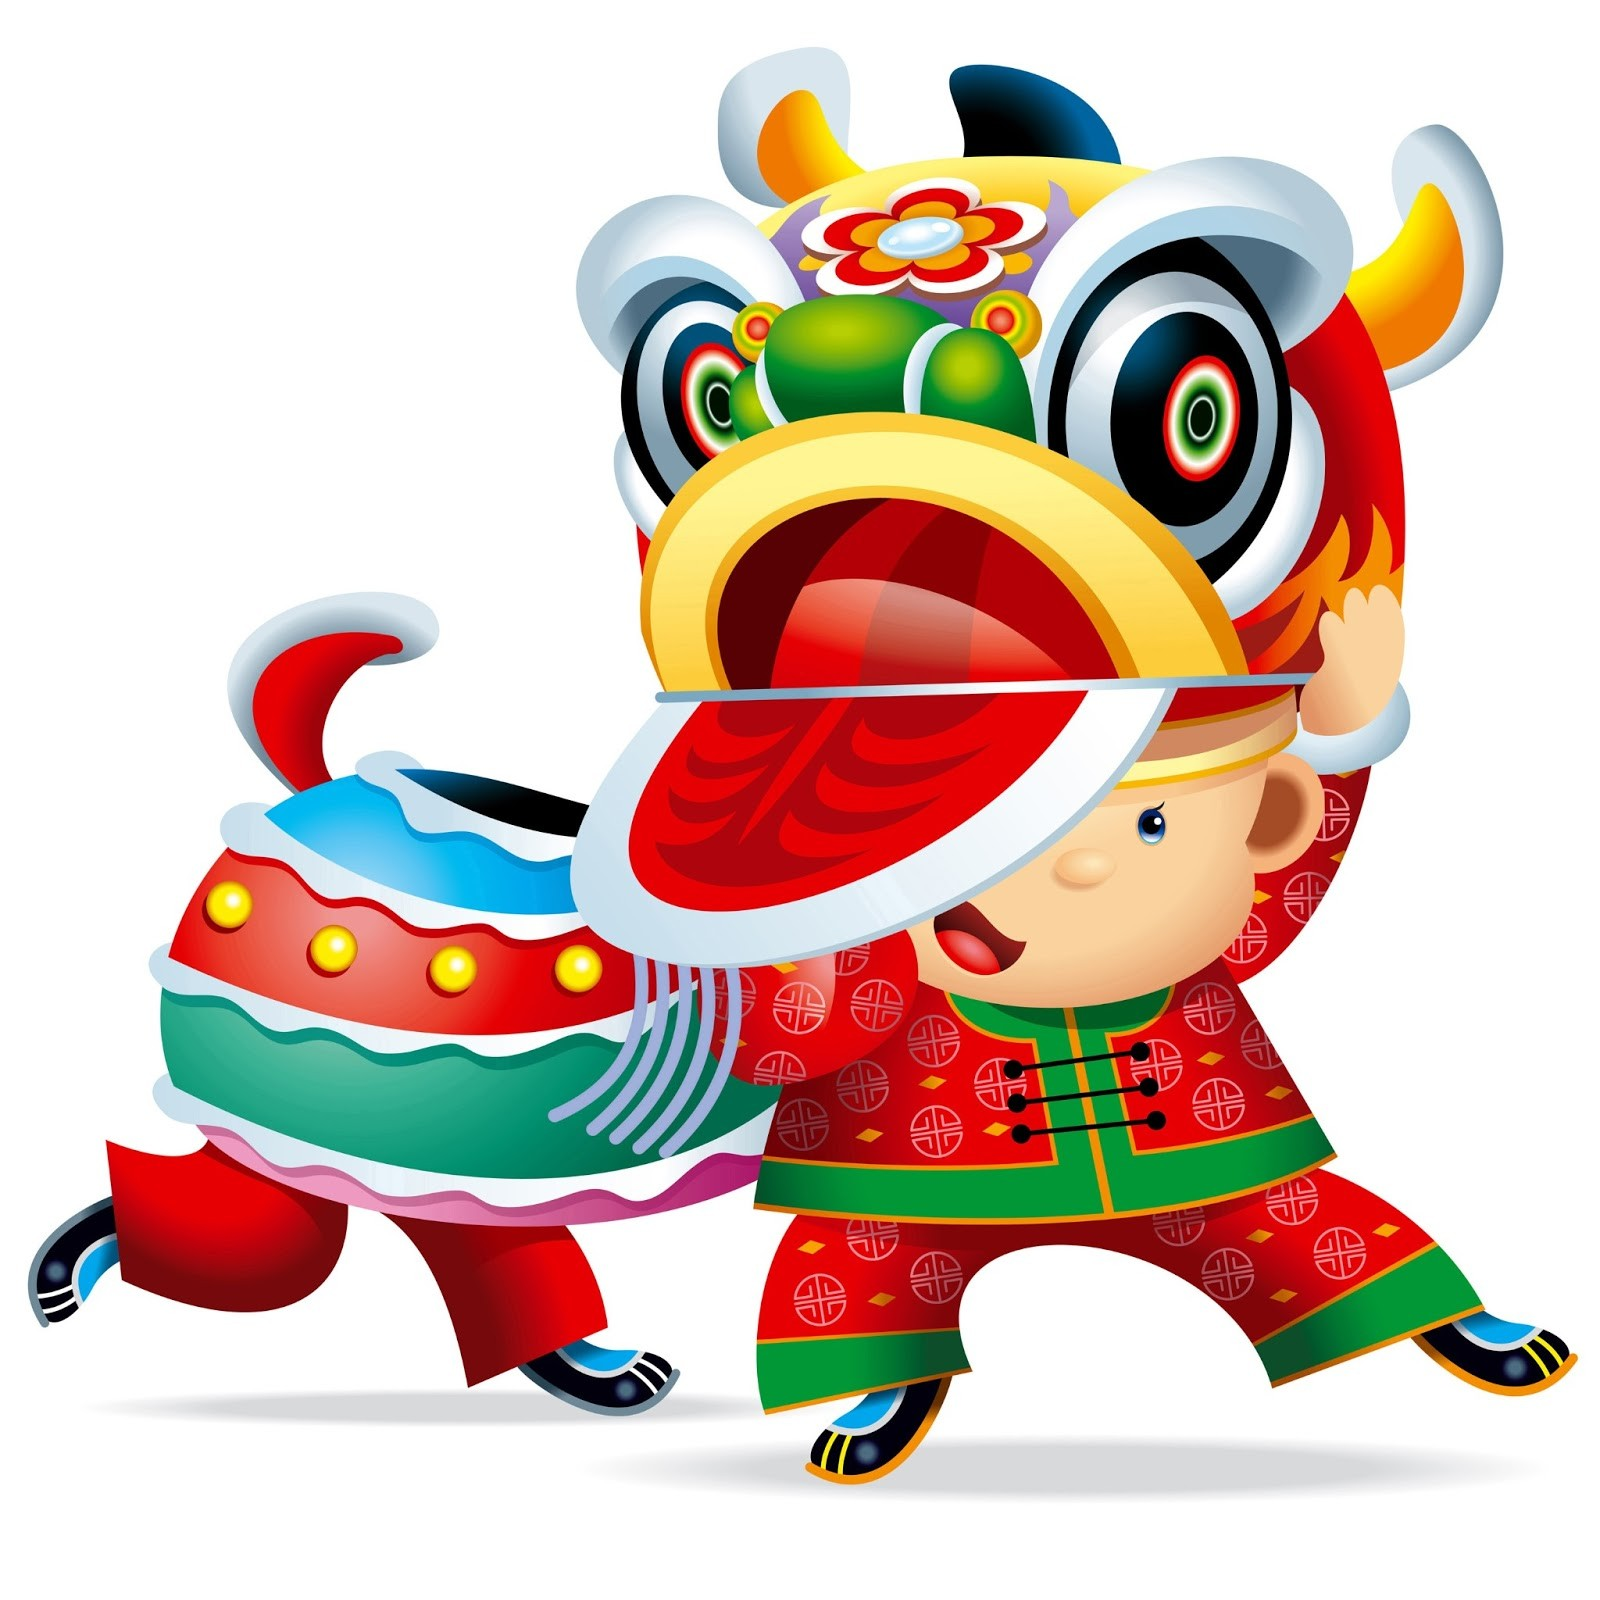 Free Chinese New Year Clipart, Download Free Clip Art, Free.